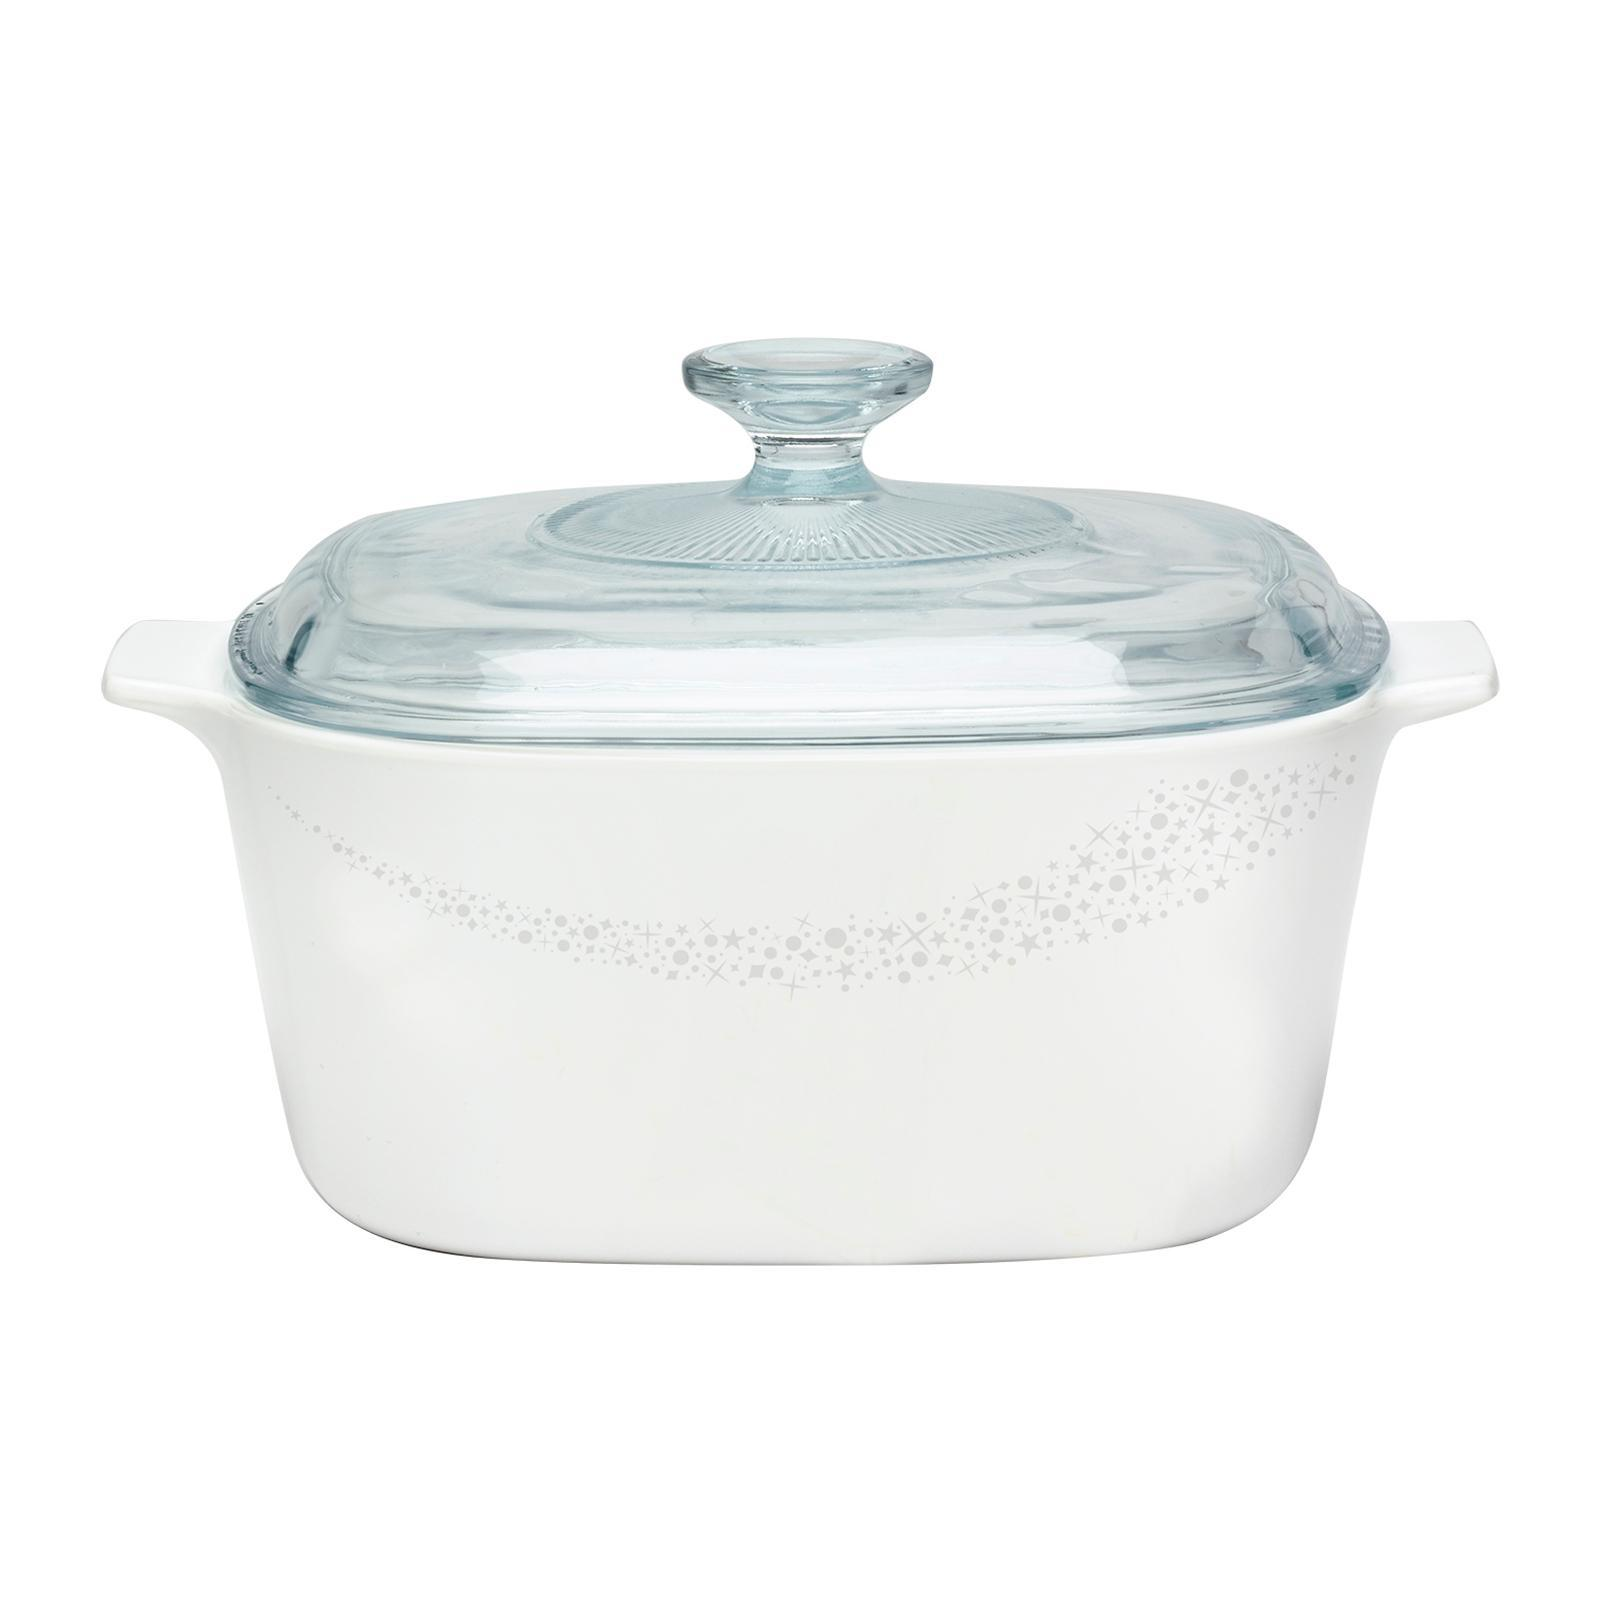 Corningware 3L Covered Casserole (Design: Moonlight)